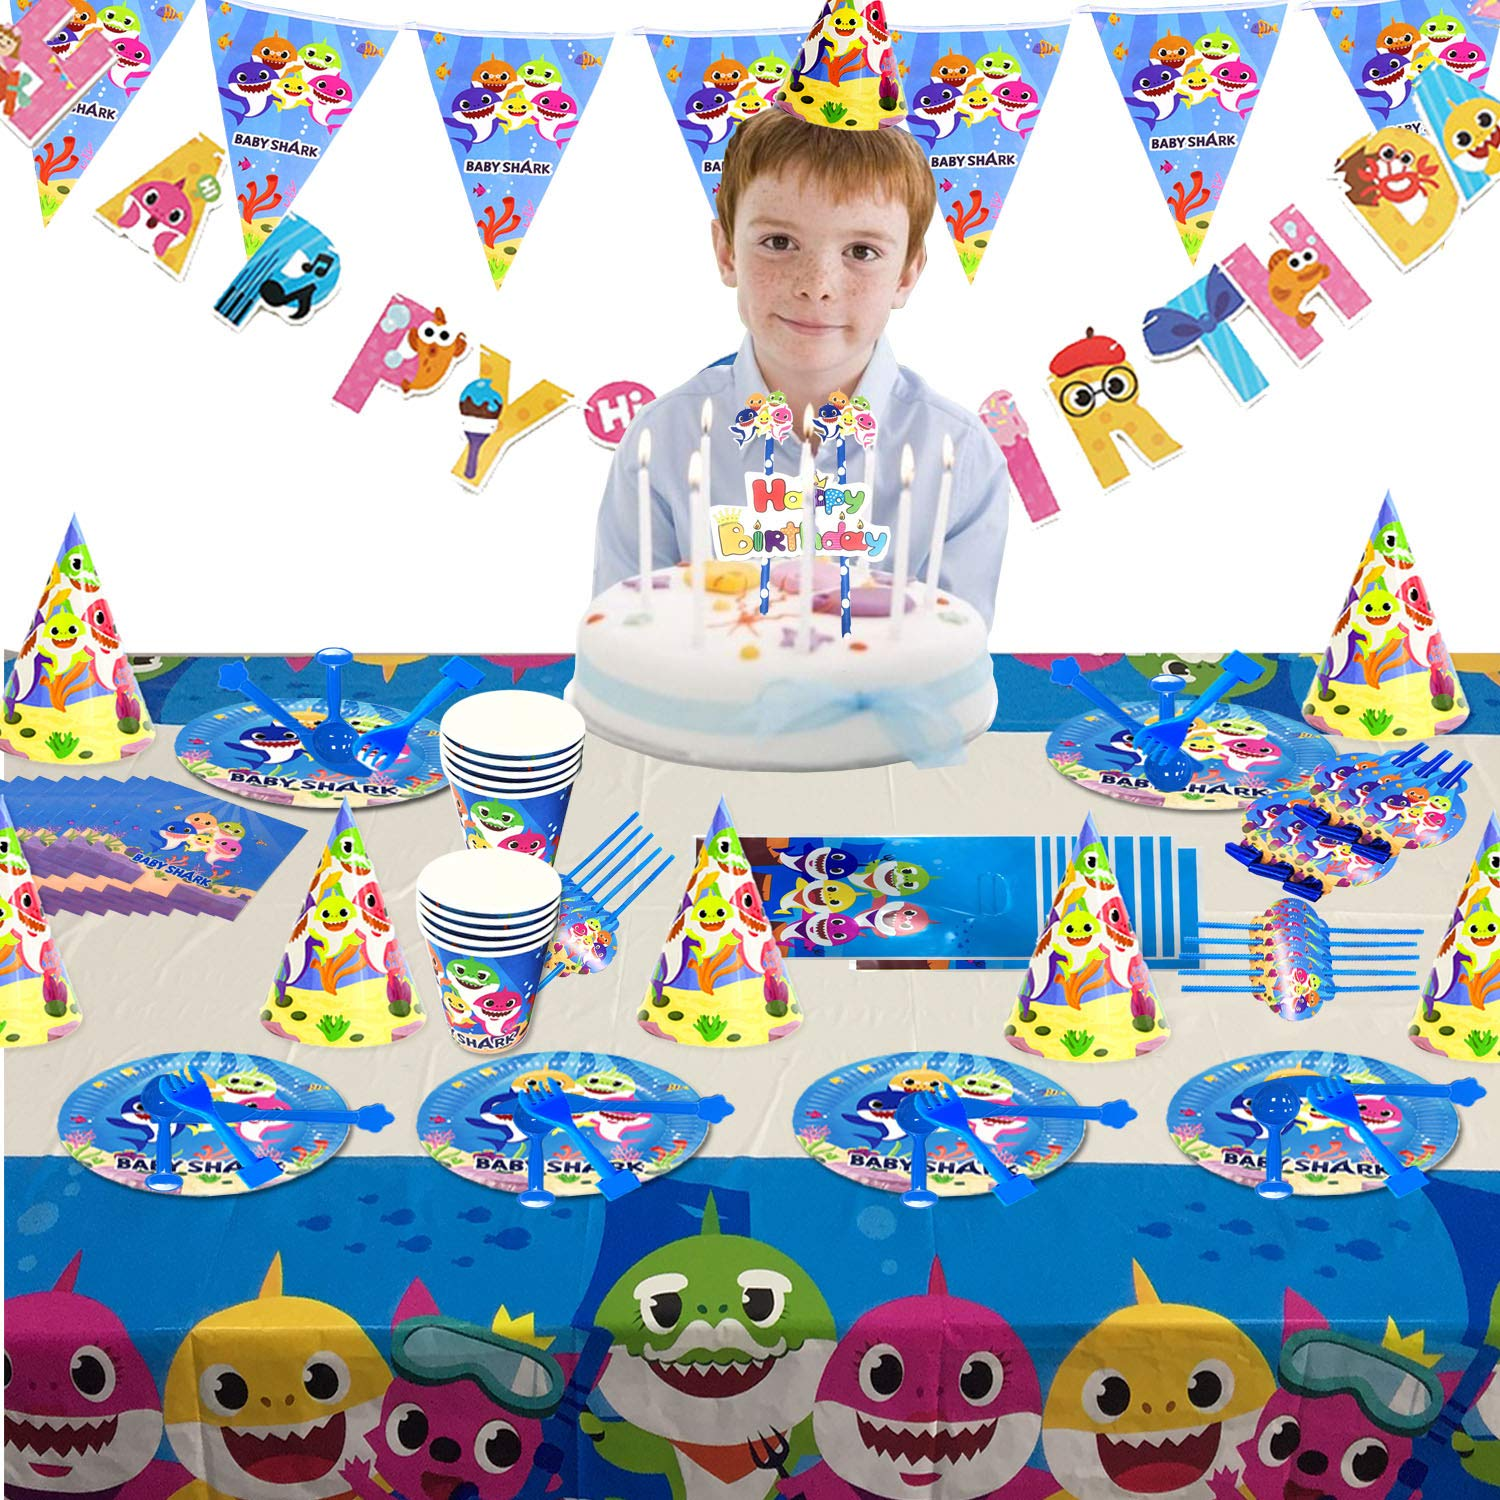 Baby Shark Party Supplies Set - 109 Pcs Baby Shark Themed Birthday Decorations Includes Disposable Tableware Kit Blowing Dragon Paper Hat Gift Bag and Banner - Serves 10 Guest by AiParty (Image #2)